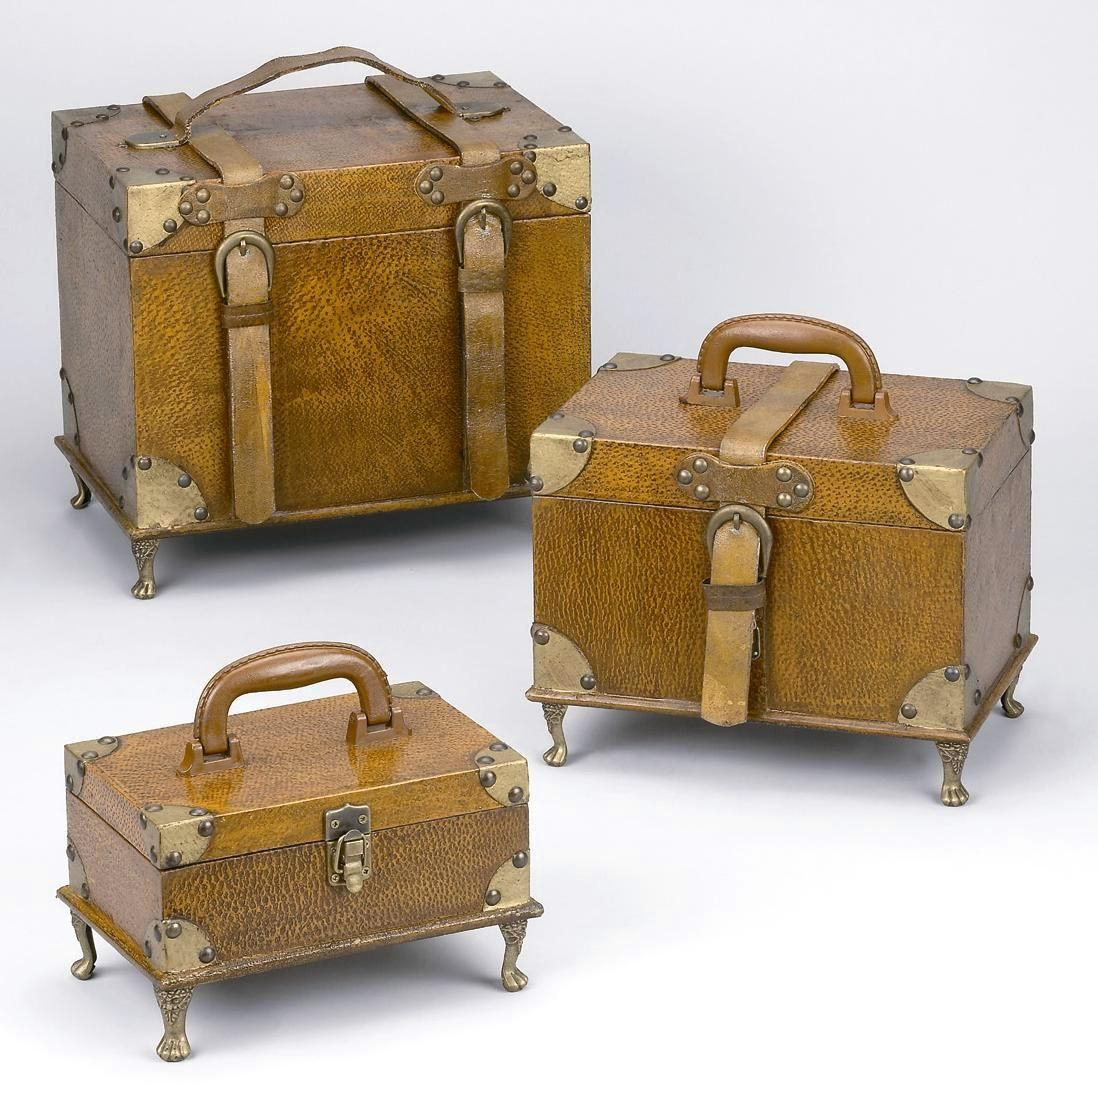 Vintage Decorative Suitcases Vintage Suitcases And Trunks Vintage Style Suitcase Trunk